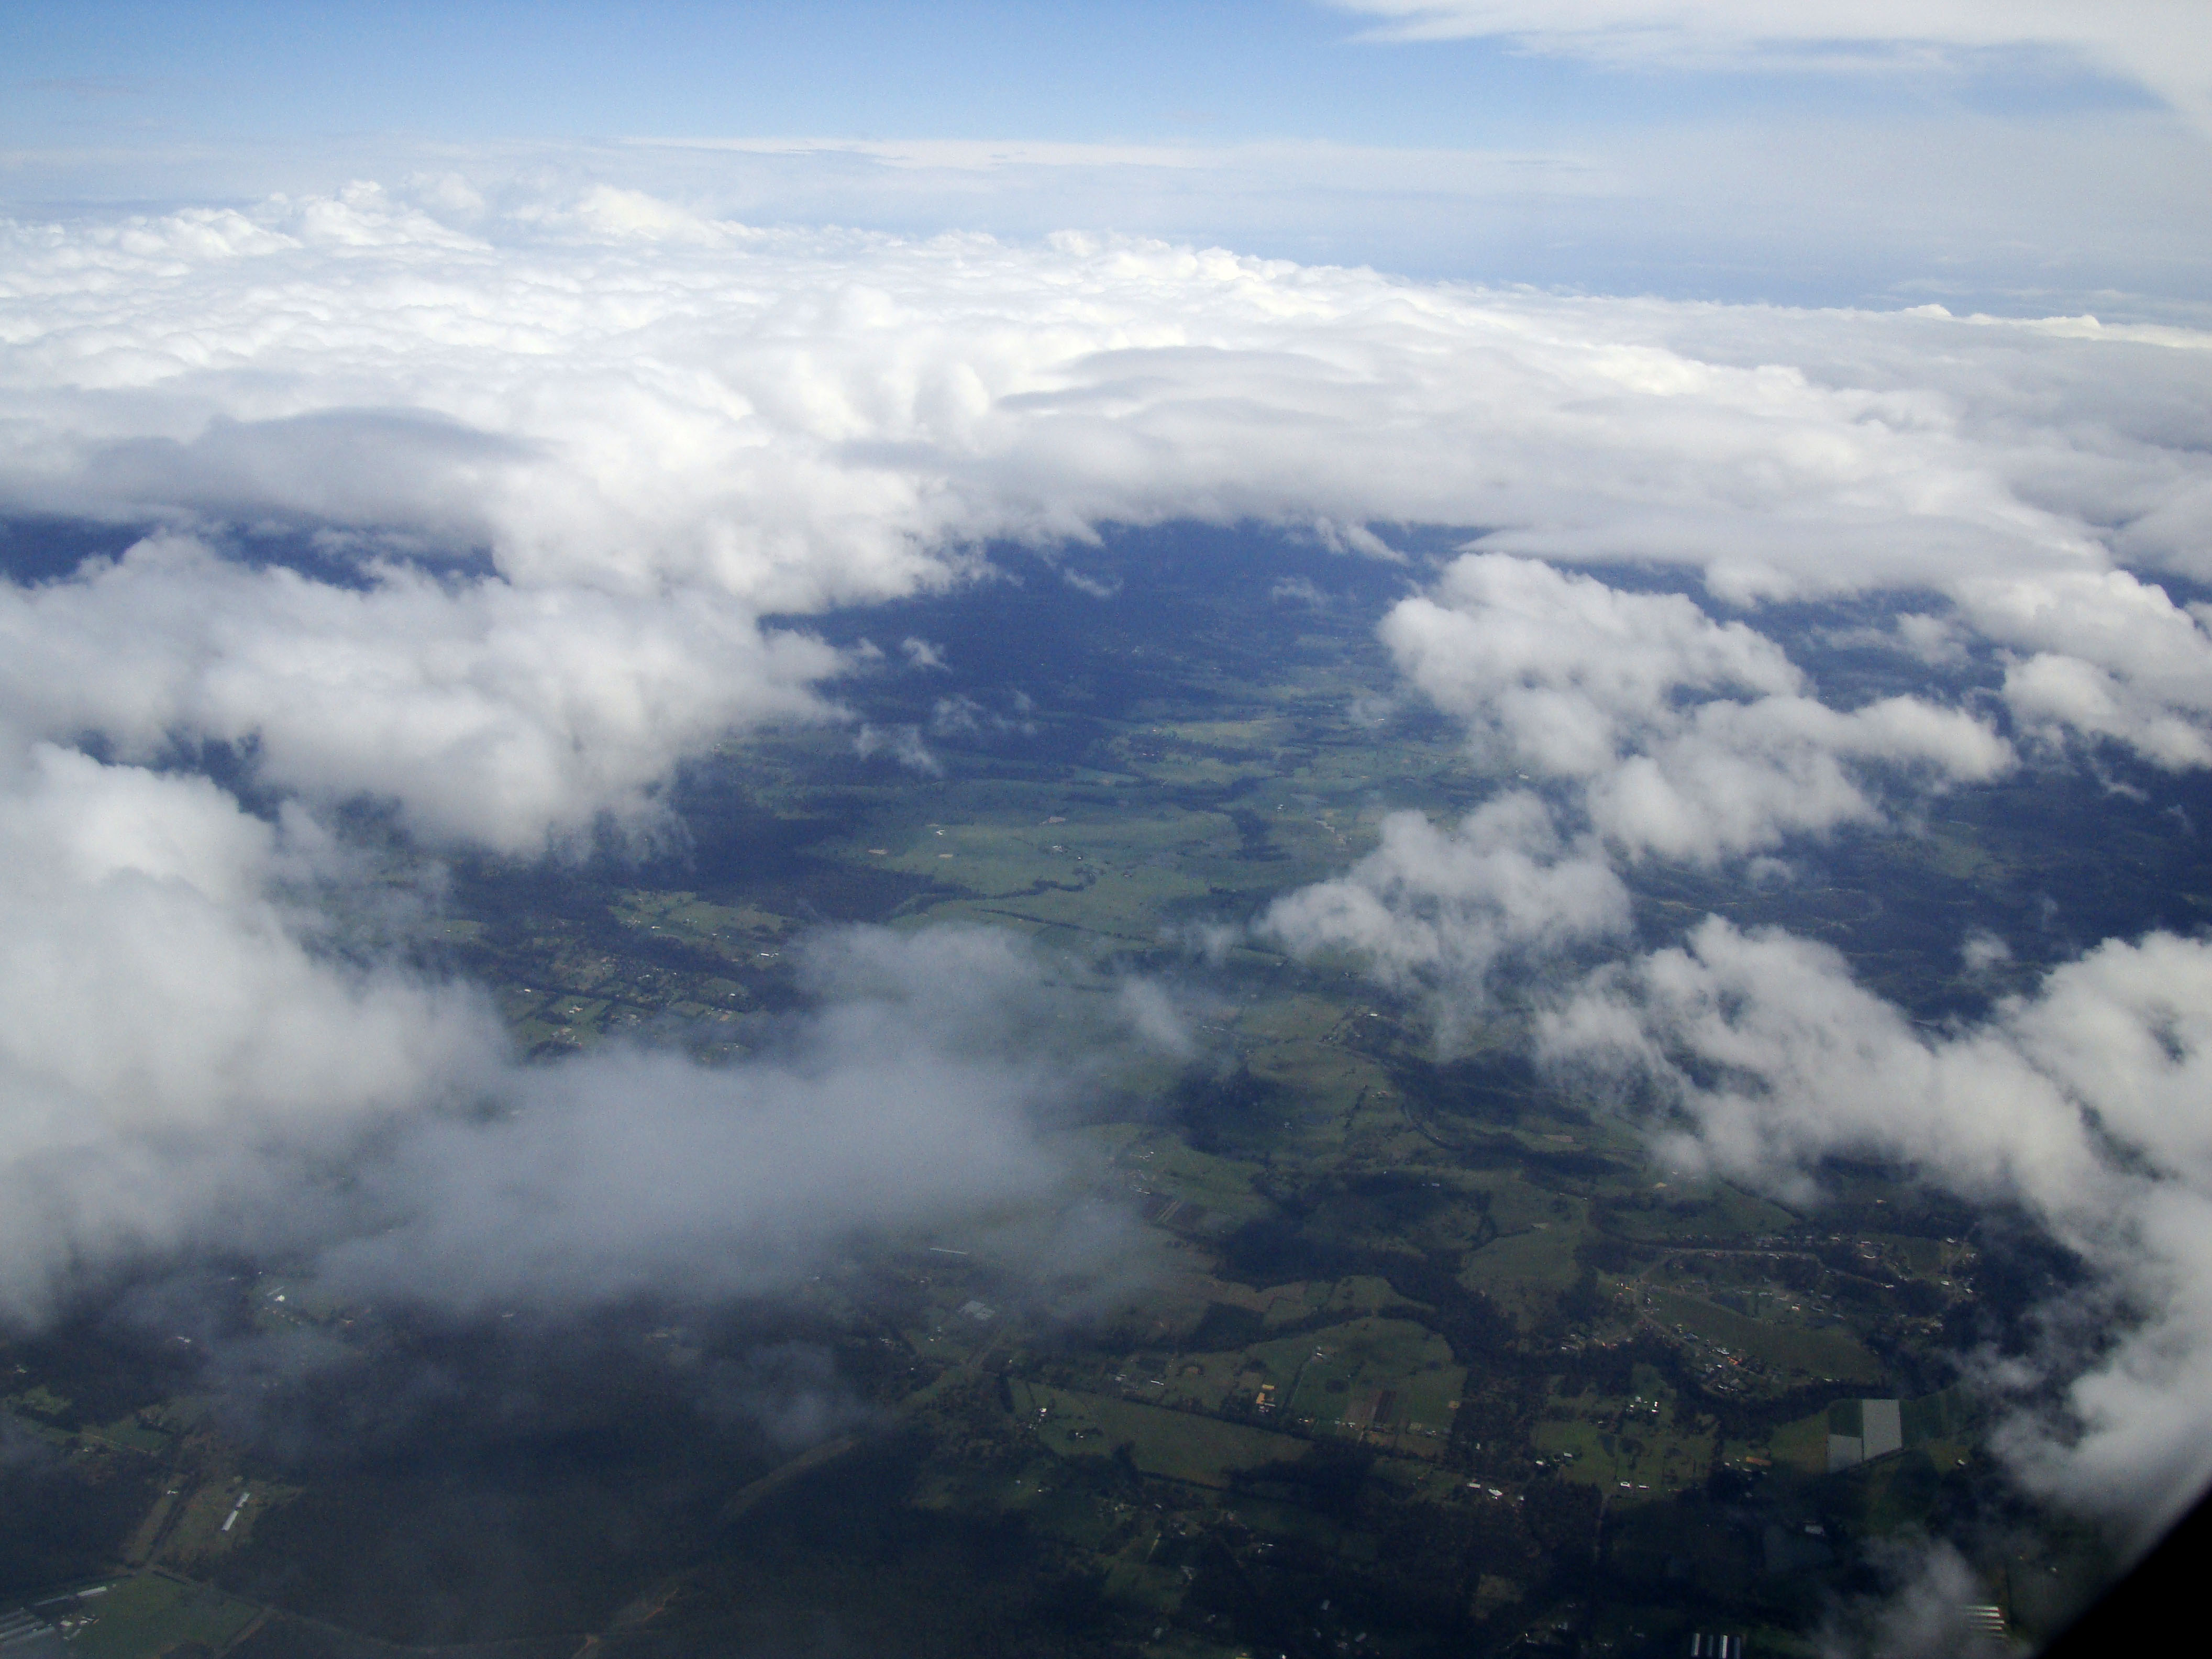 Textures Clouds Formations Sky Storms Weather Phenomena Aerial Views 14